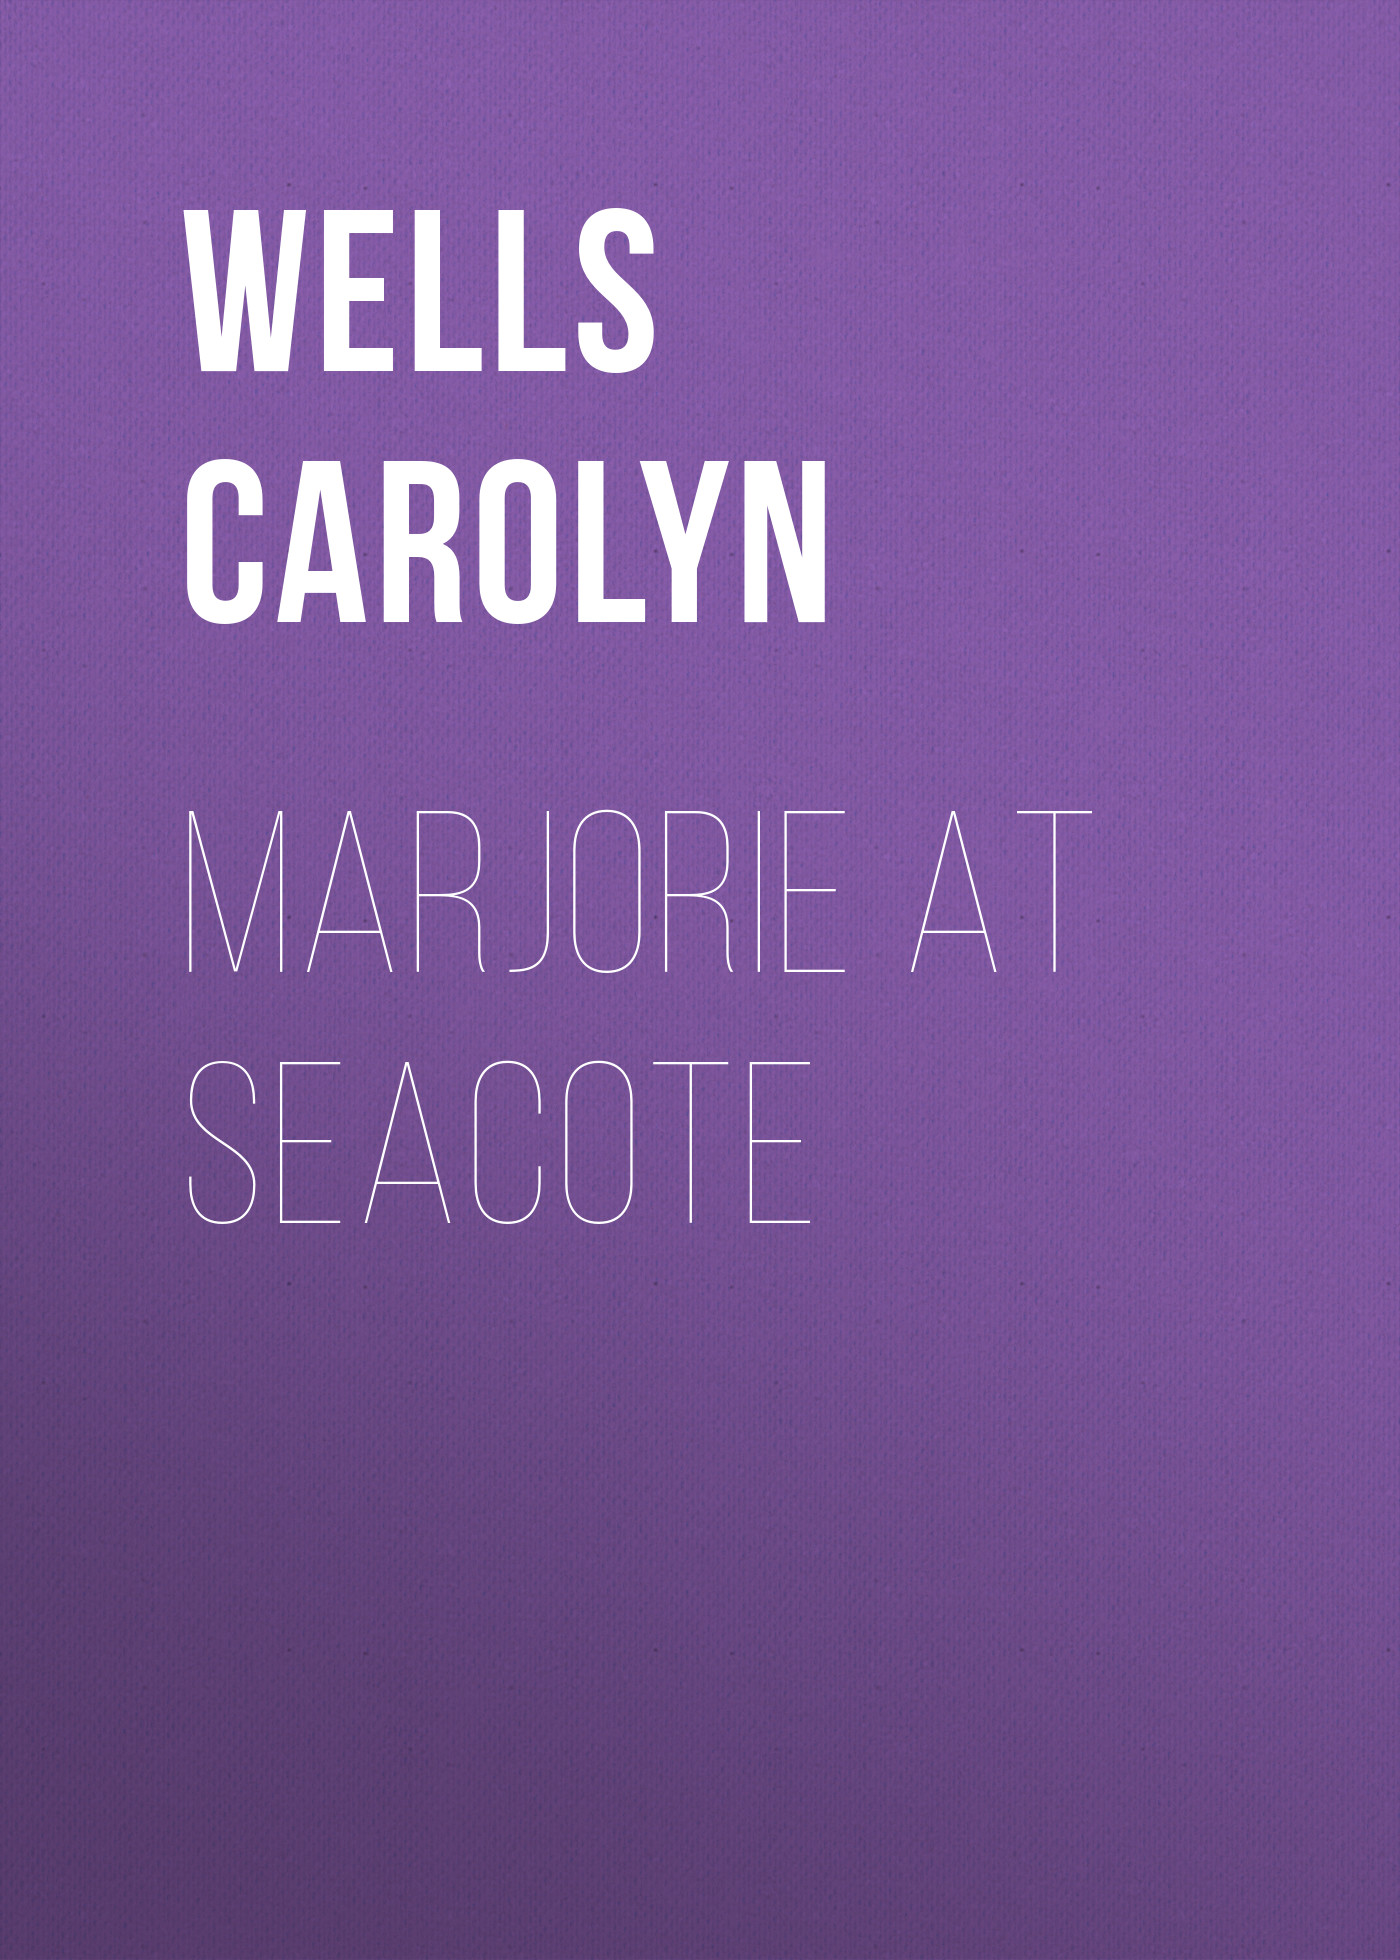 Wells Carolyn Marjorie at Seacote